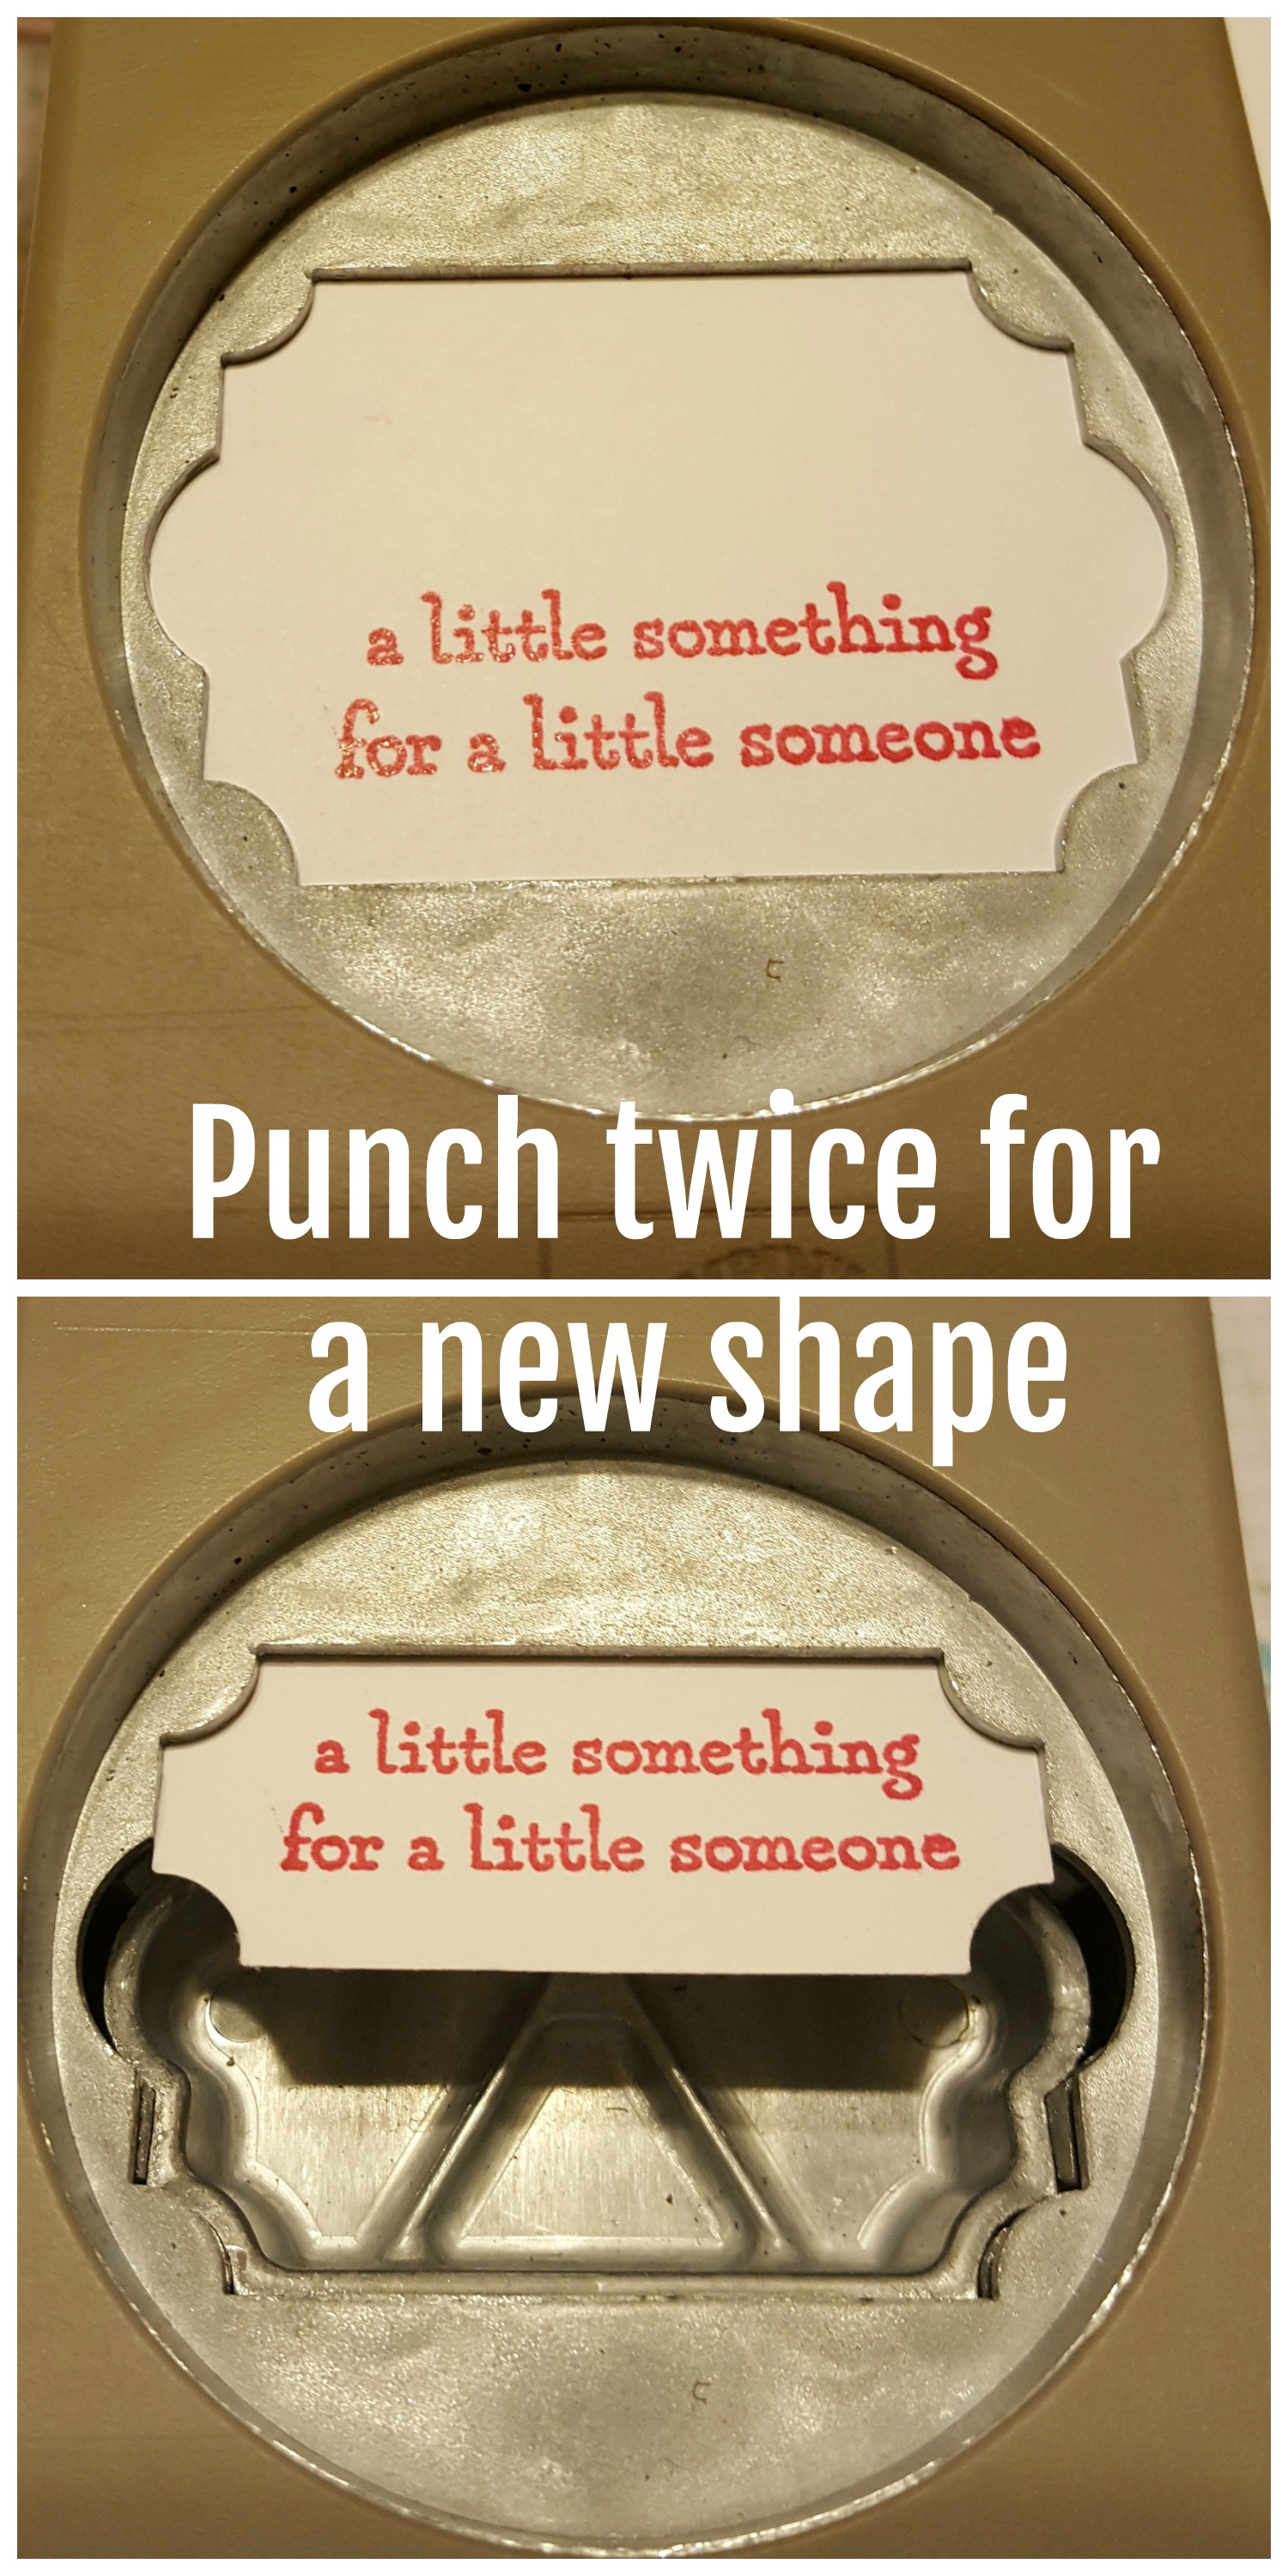 Stampin' Up! punch tip - Punch twice to punch a different, smaller shape - Everyday Label punch - Sarah Fleming - Prepare to Dye Papercrafts